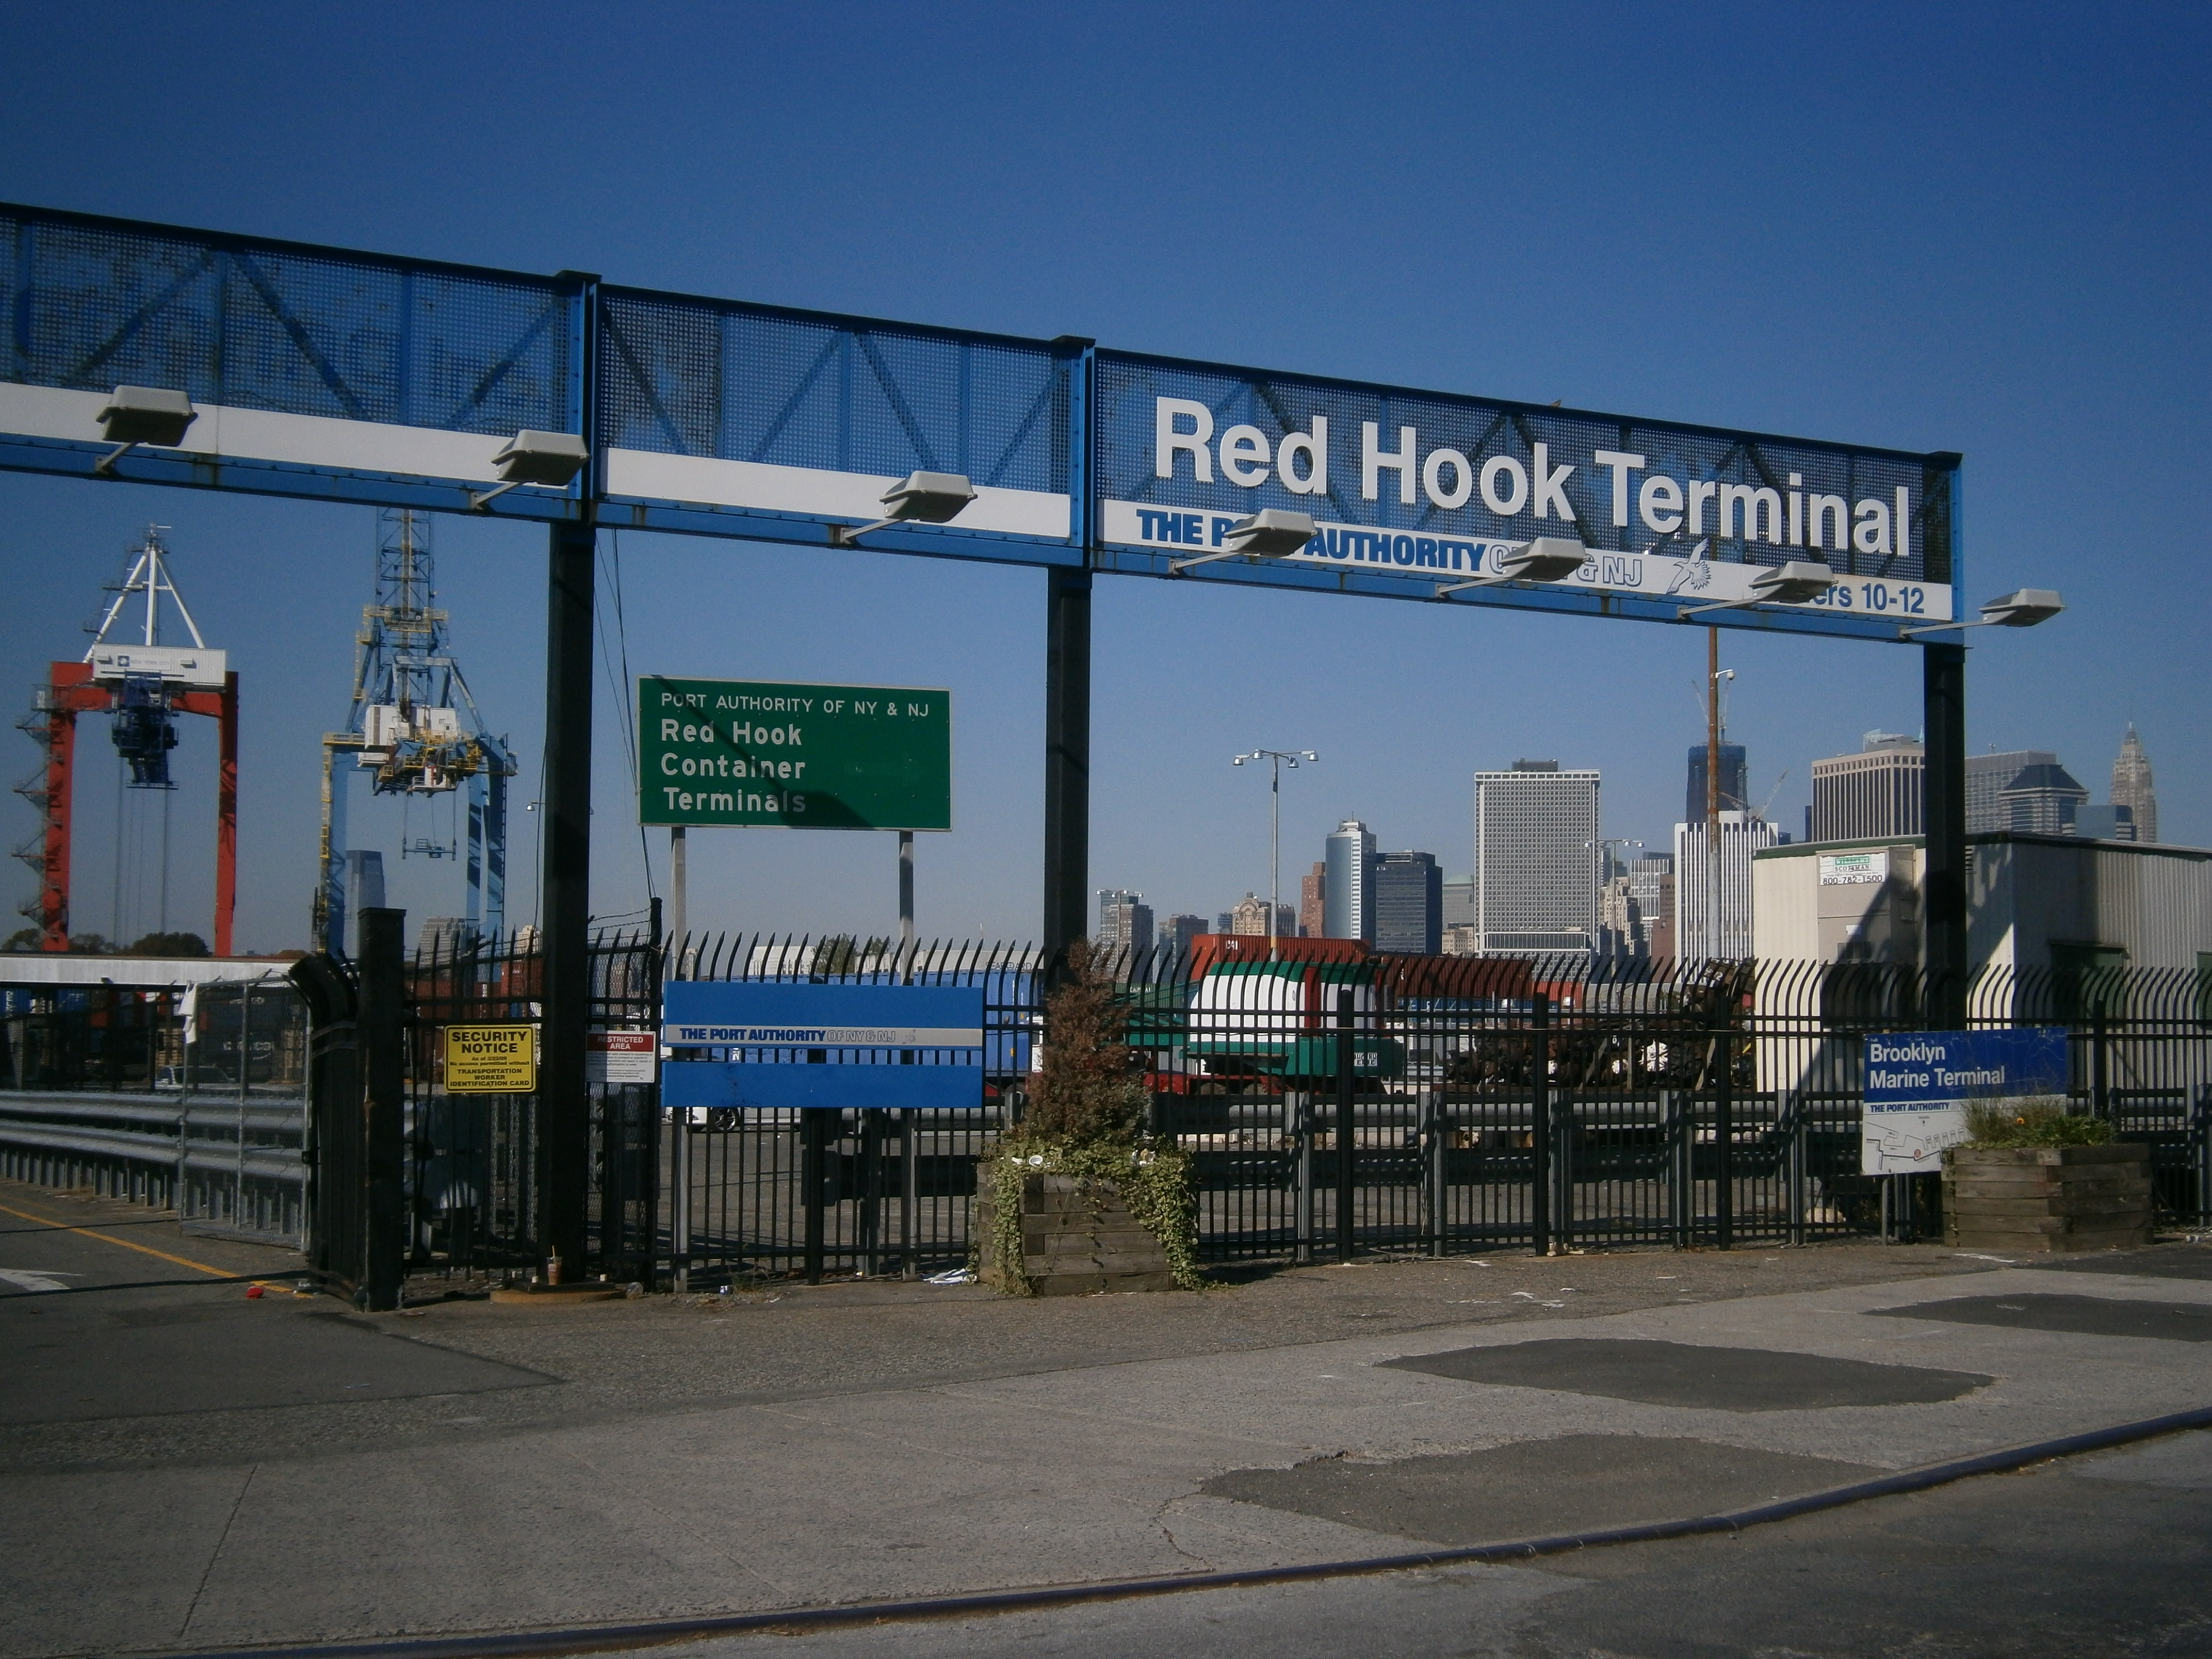 Red Hook Container Terminal - Wikipedia